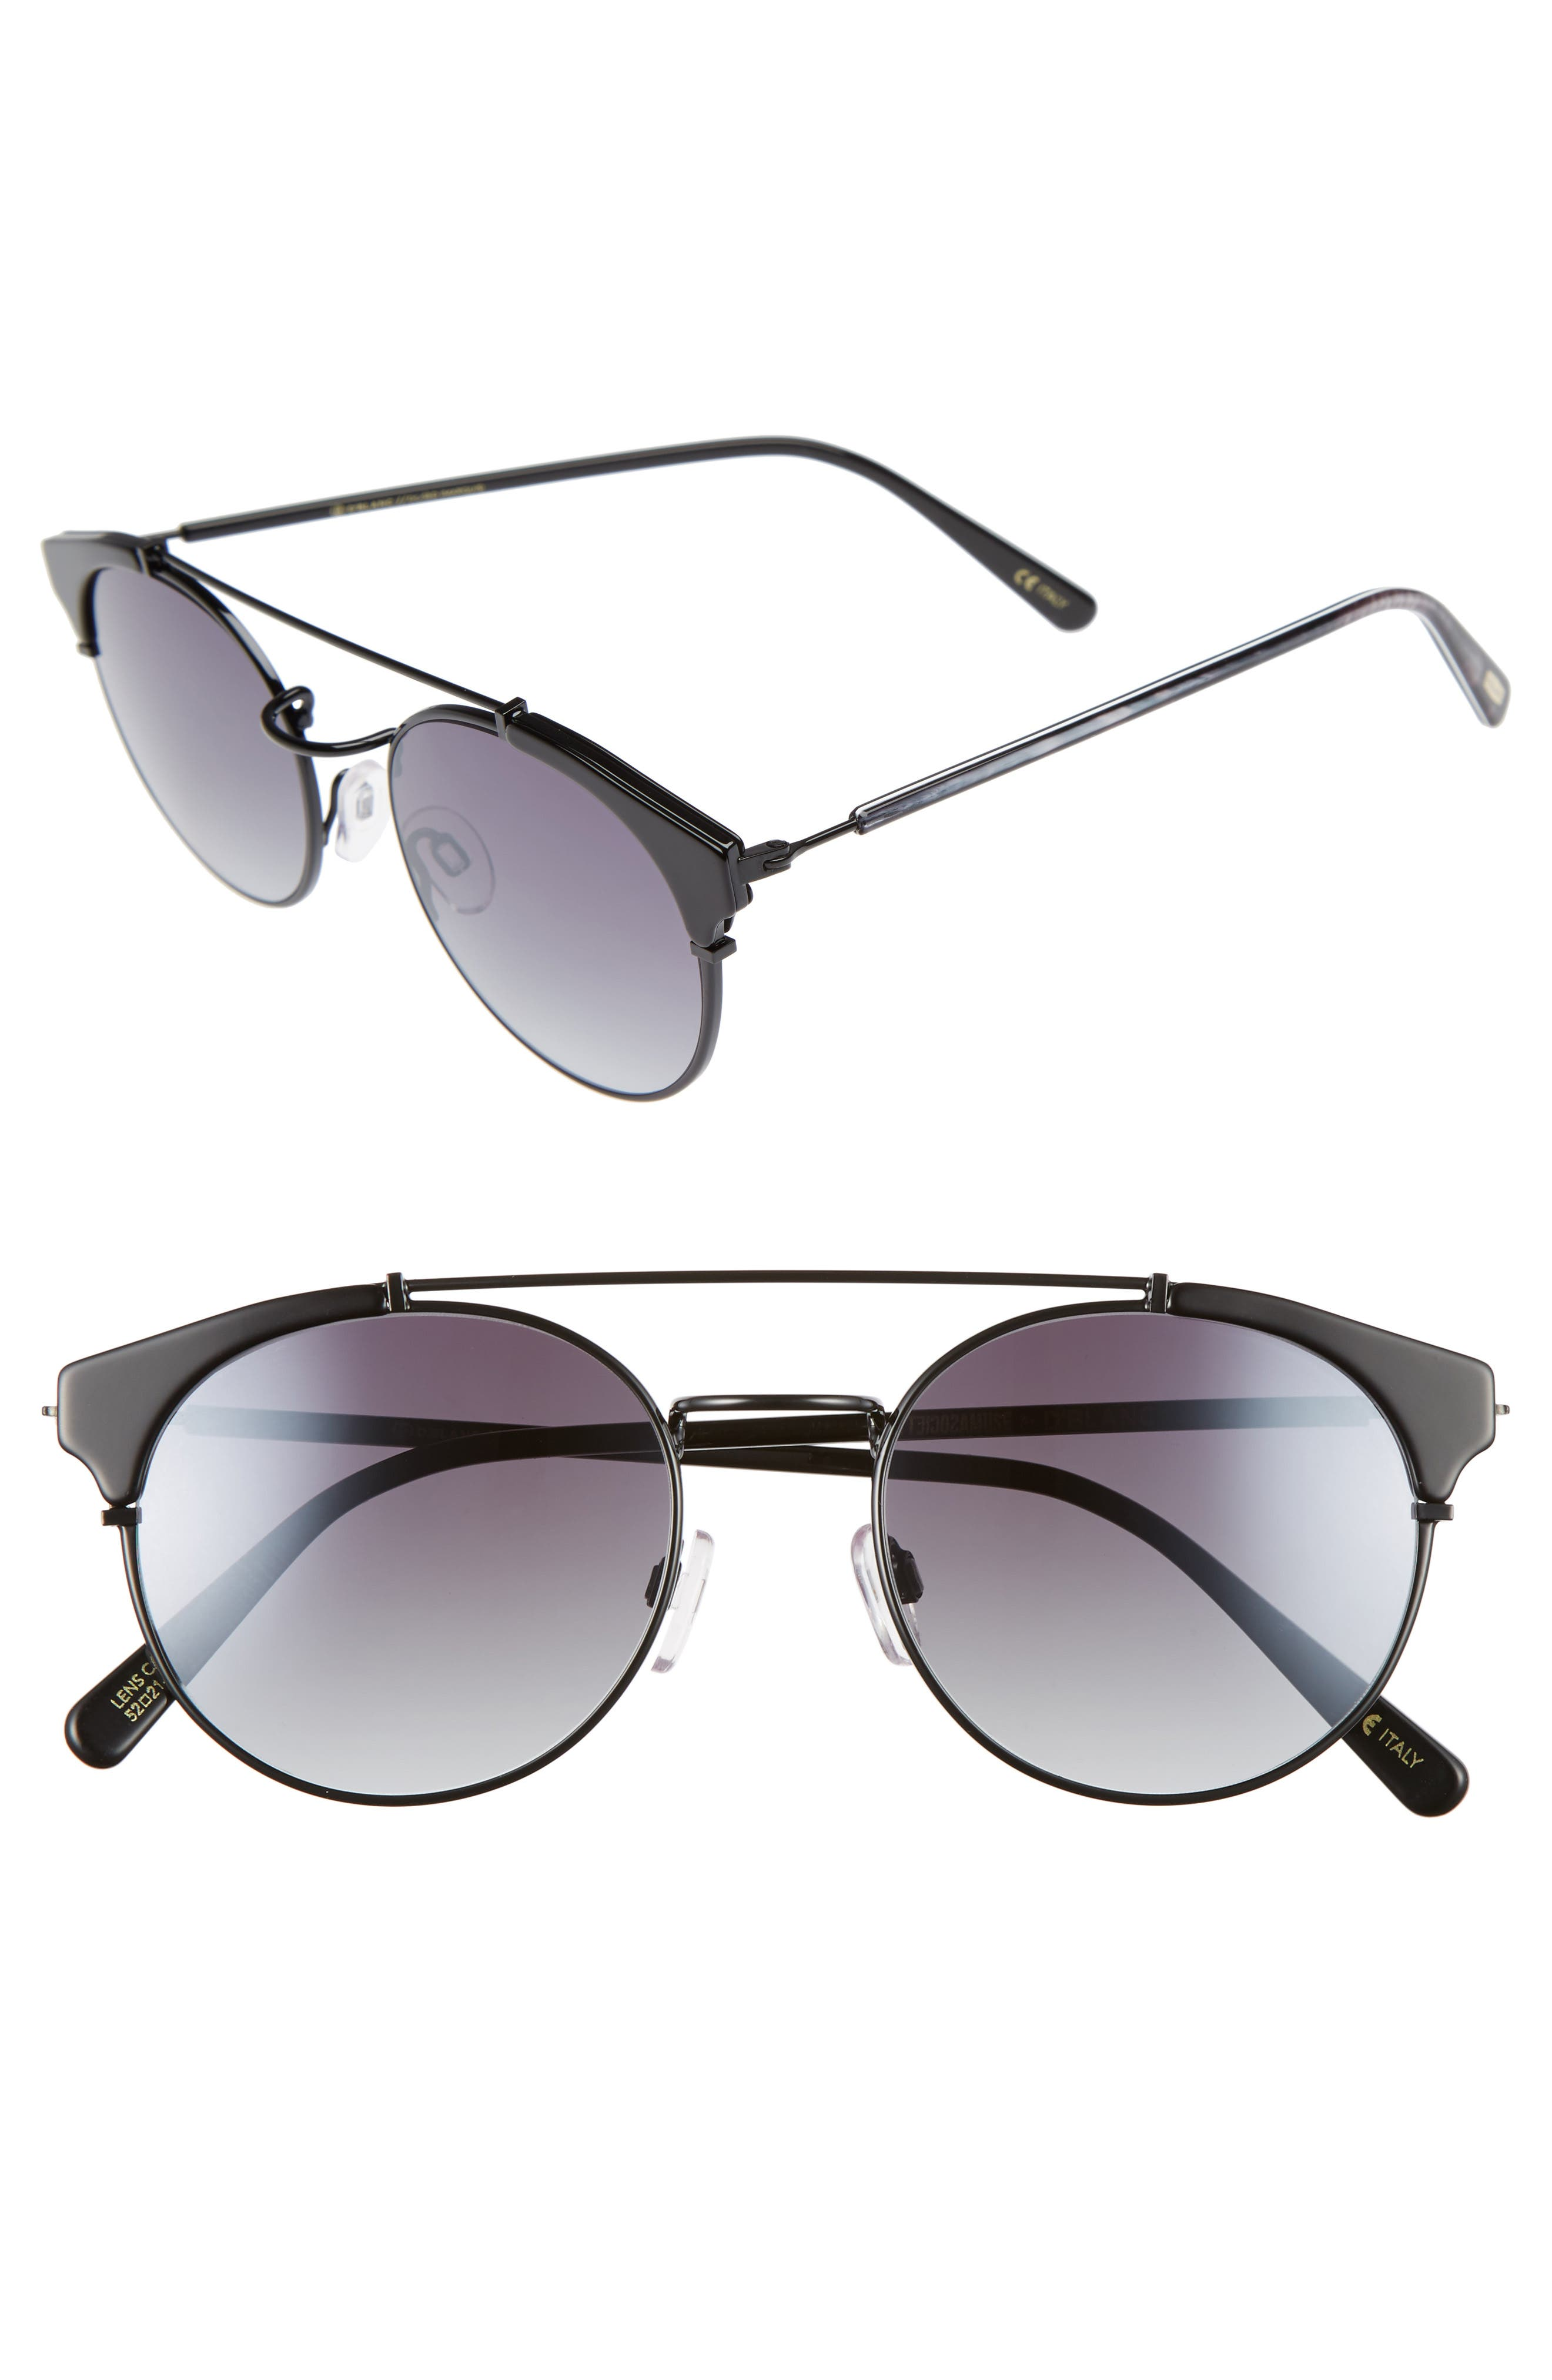 D'BLANC x Amuse Society Dosed Marquis 52mm Gradient Round Aviator Sunglasses,                             Main thumbnail 2, color,